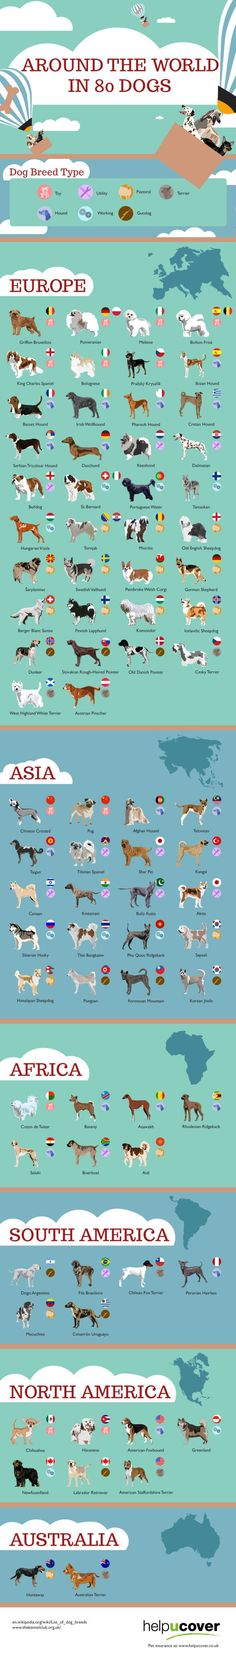 I thought this was a really interesting infographic about dog breeds from around the world to share with you today.